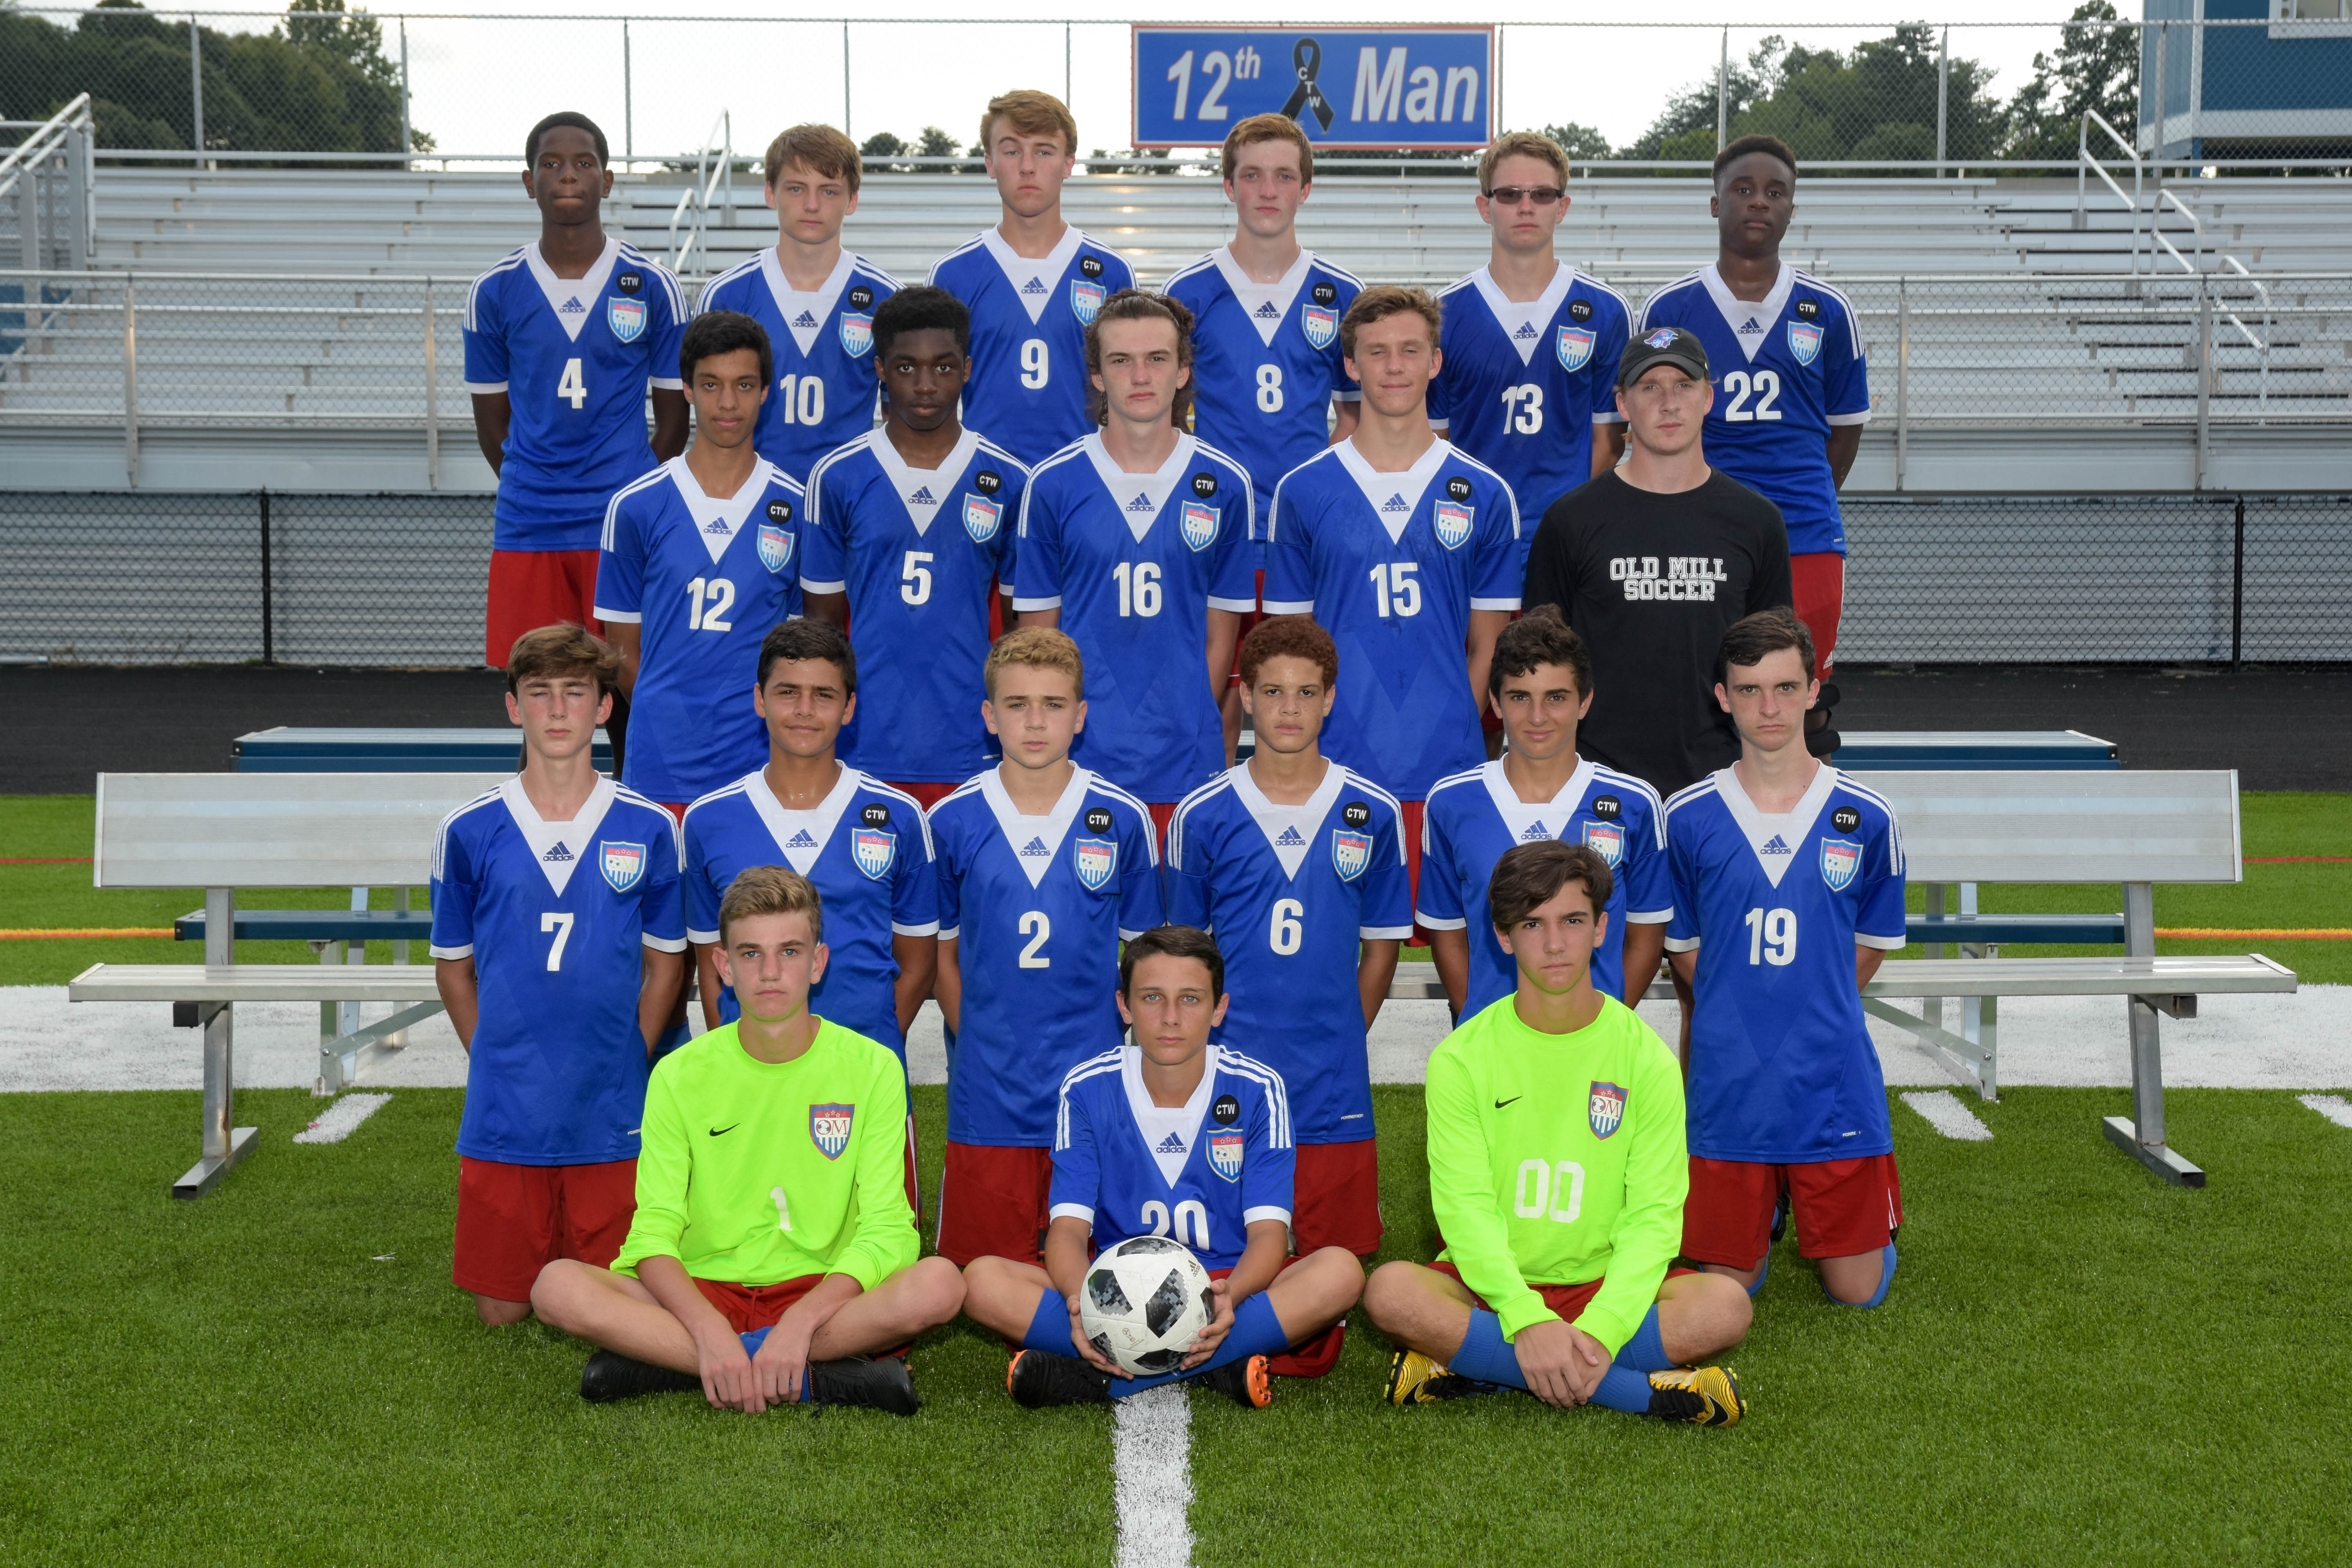 JV Boys Soccer to Play in County Championship on Tuesday, 10/23 at 1:00 PM